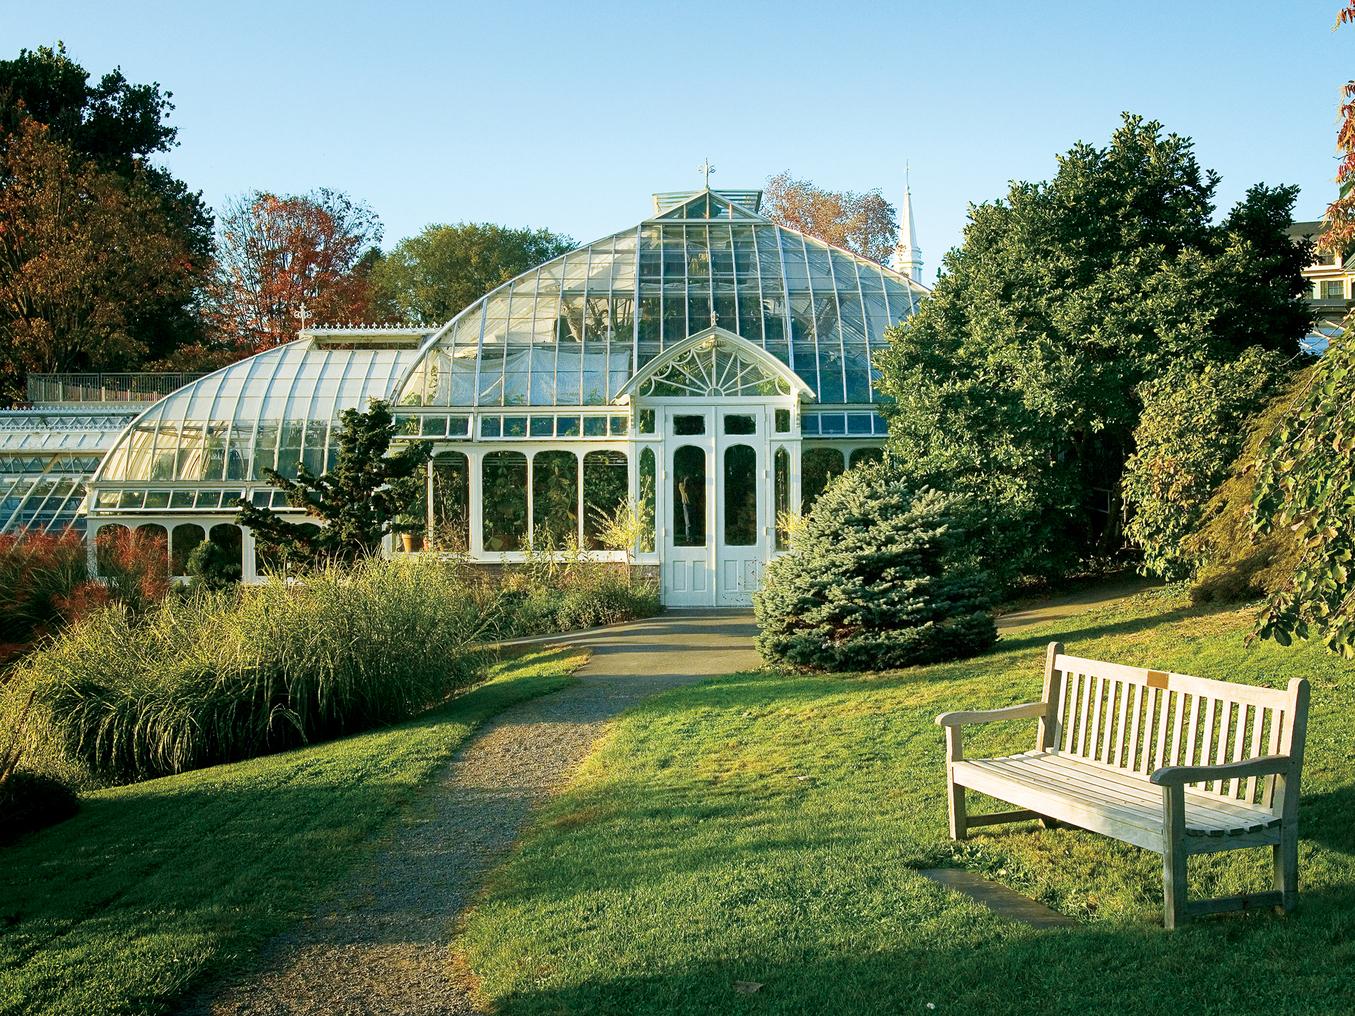 Lyman Conservatory outside view with trees